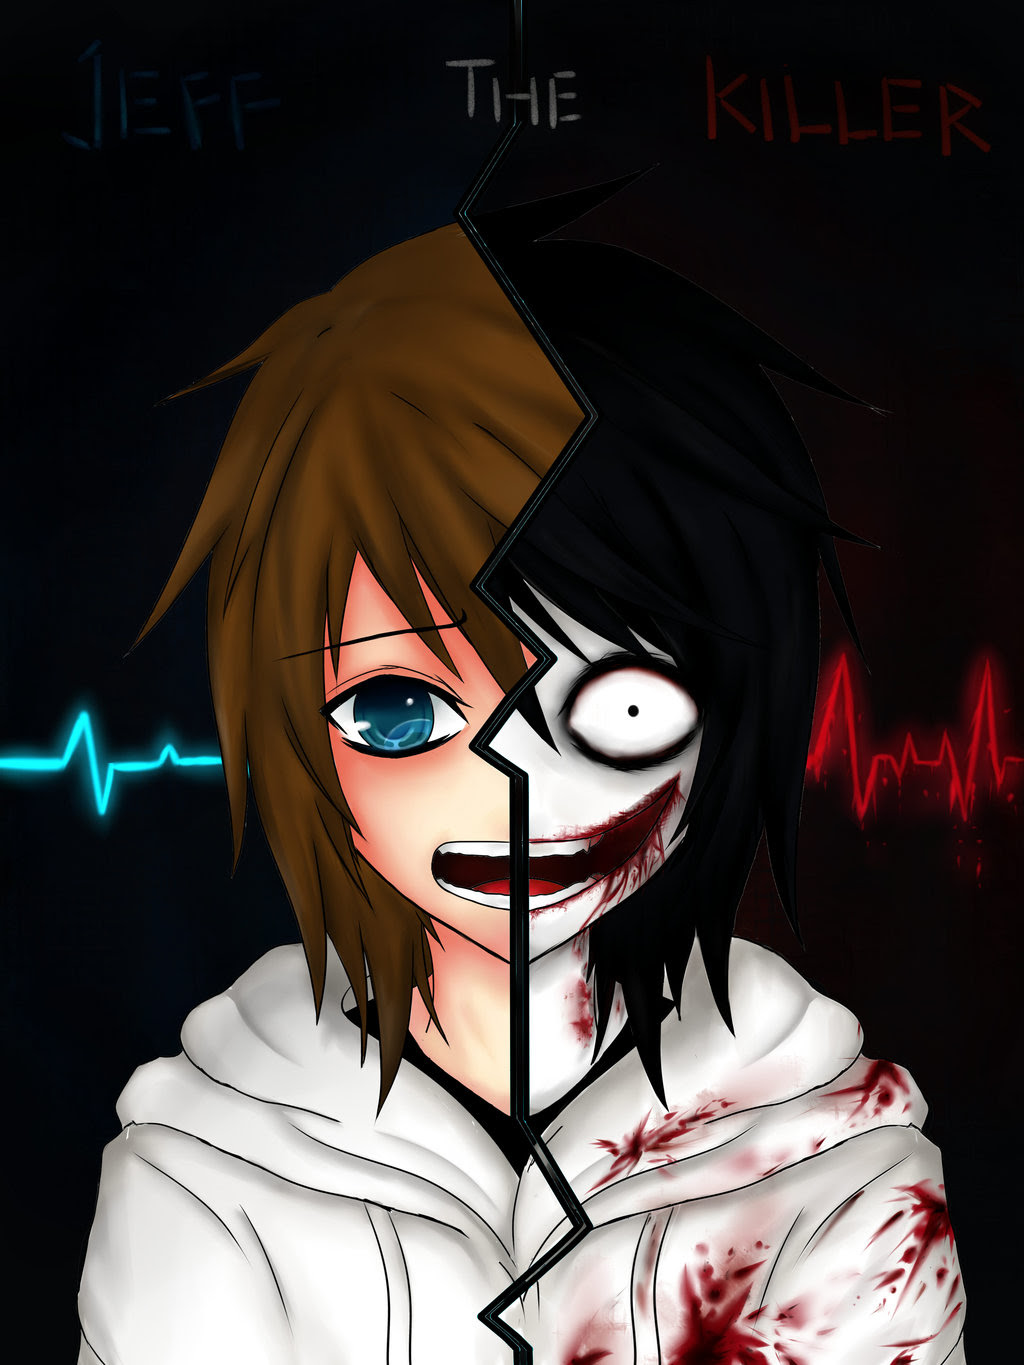 Jeff The Killer Wallpaper HD - WallpaperSafari